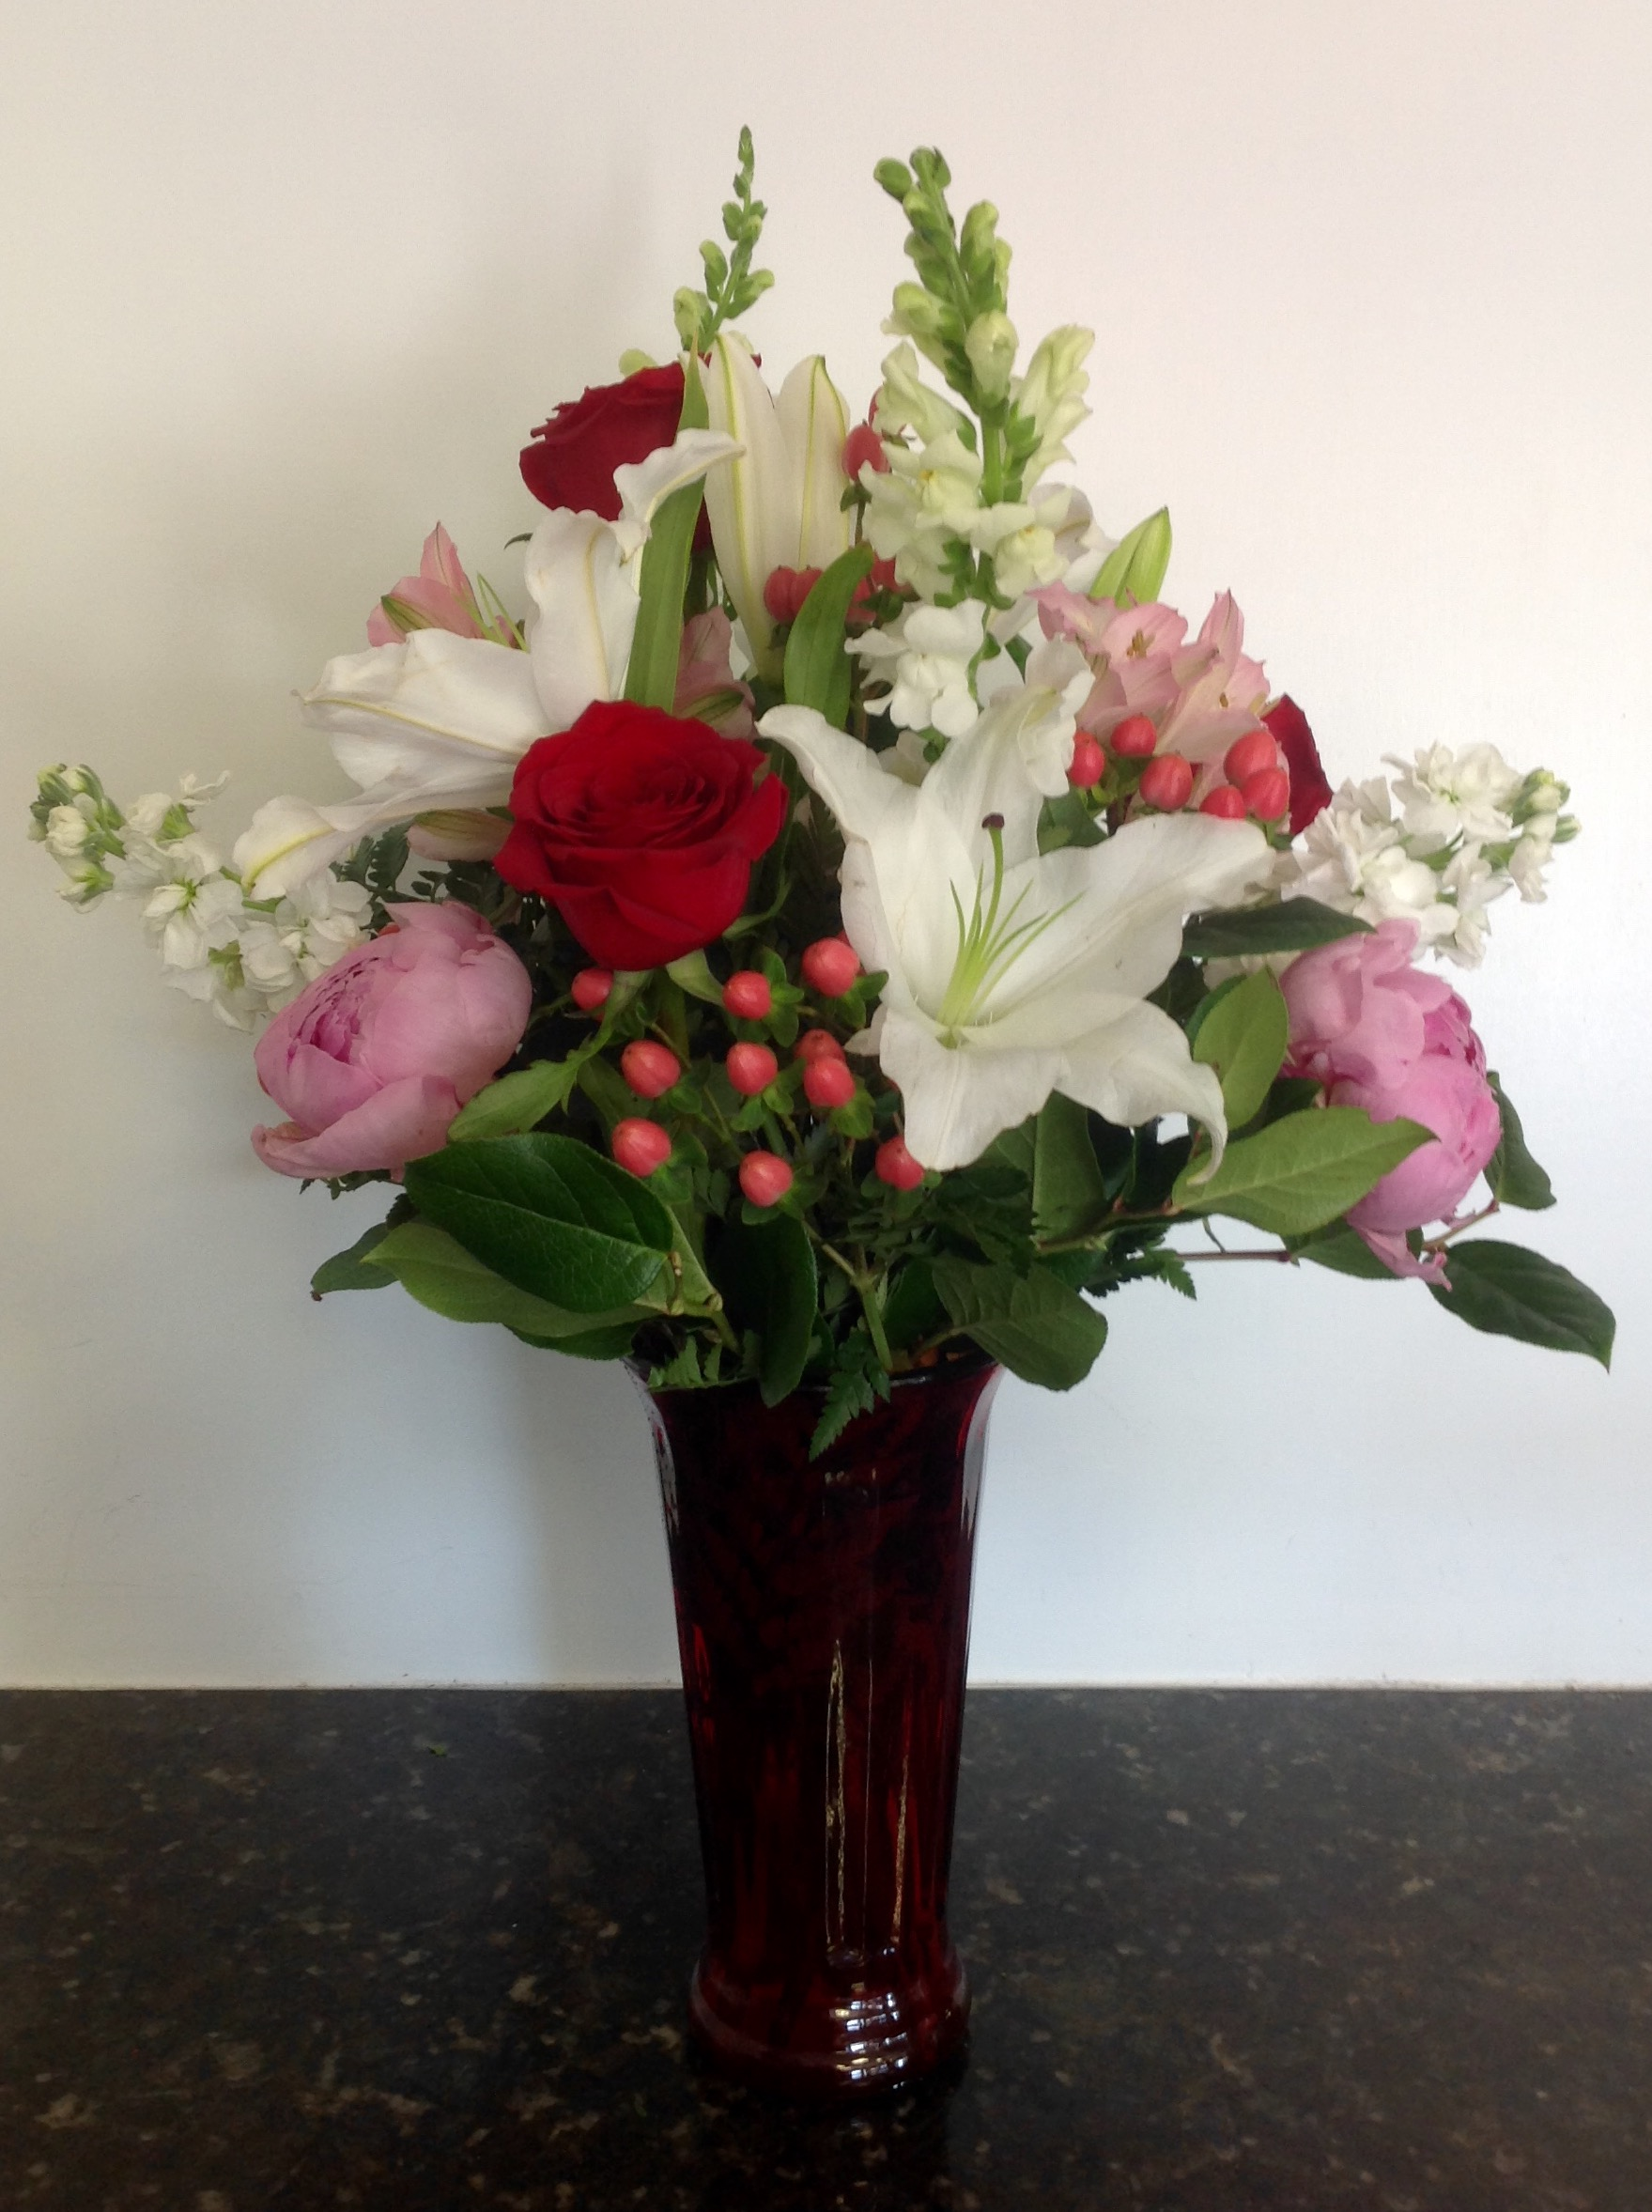 Perfectly Passion Bouquet  - Standard $85 • Premium (shown) $100 • Deluxe $120